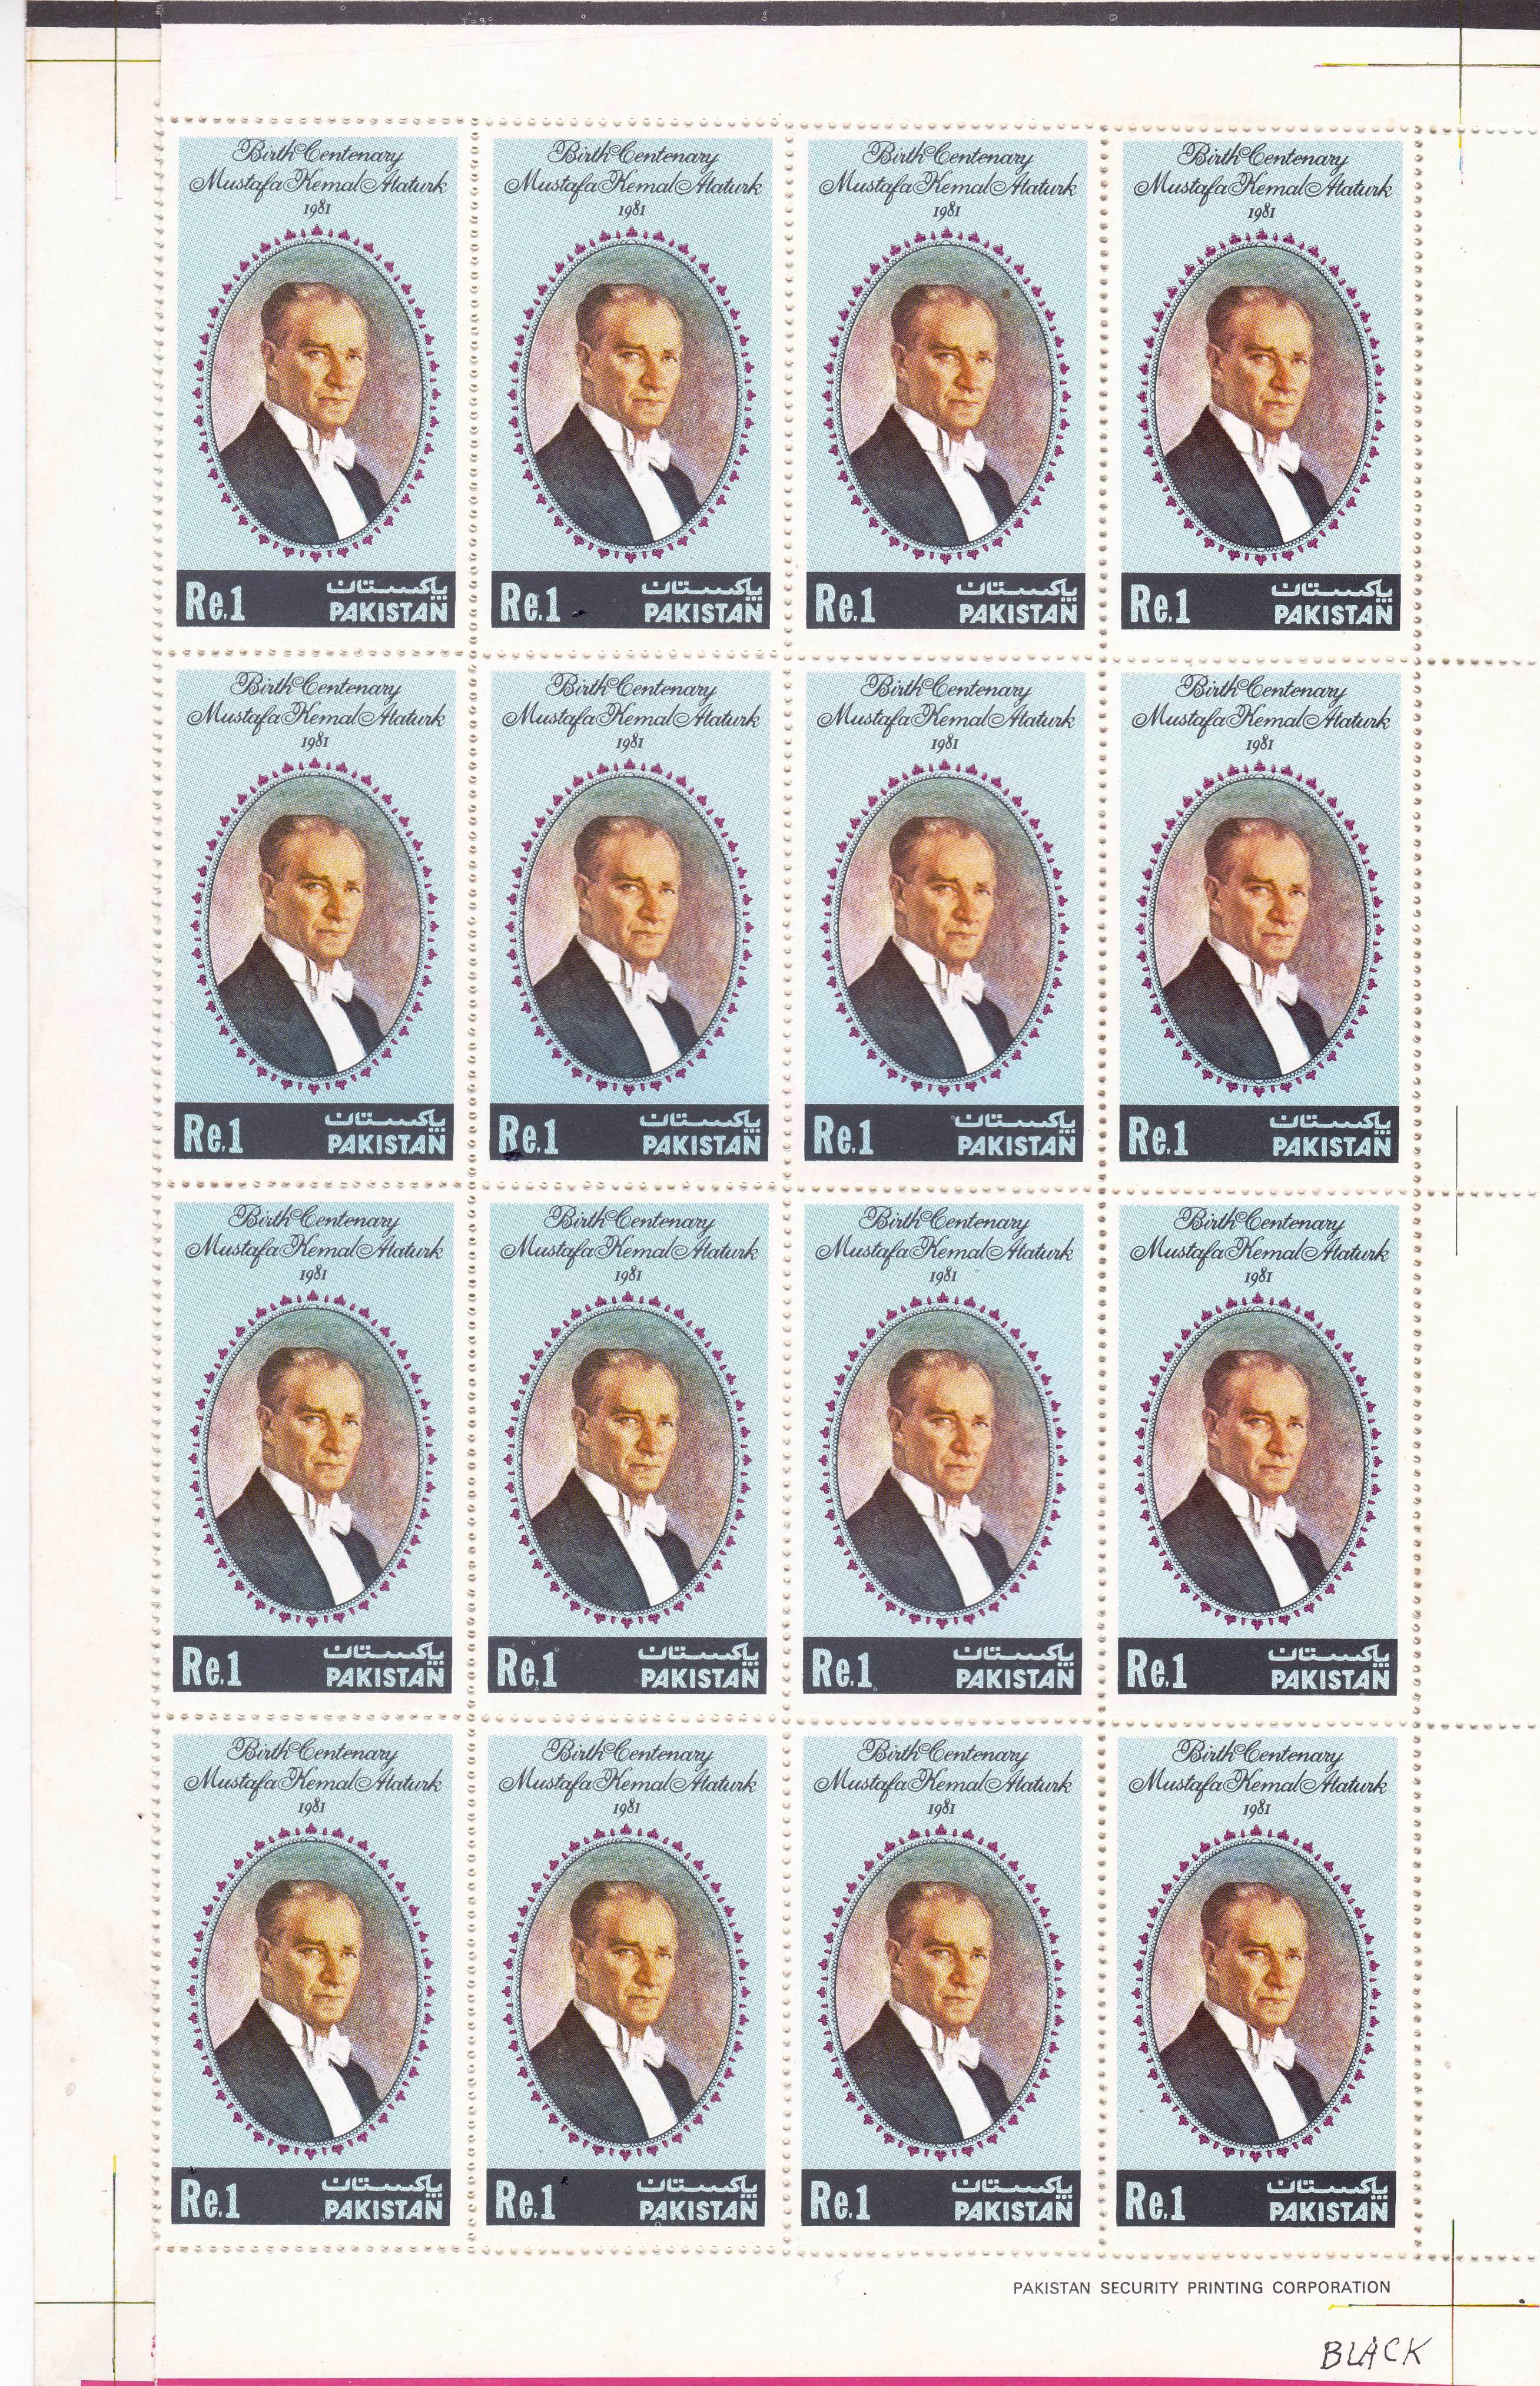 Pakistan Stamps Sheet 1981 Kemal Staturk